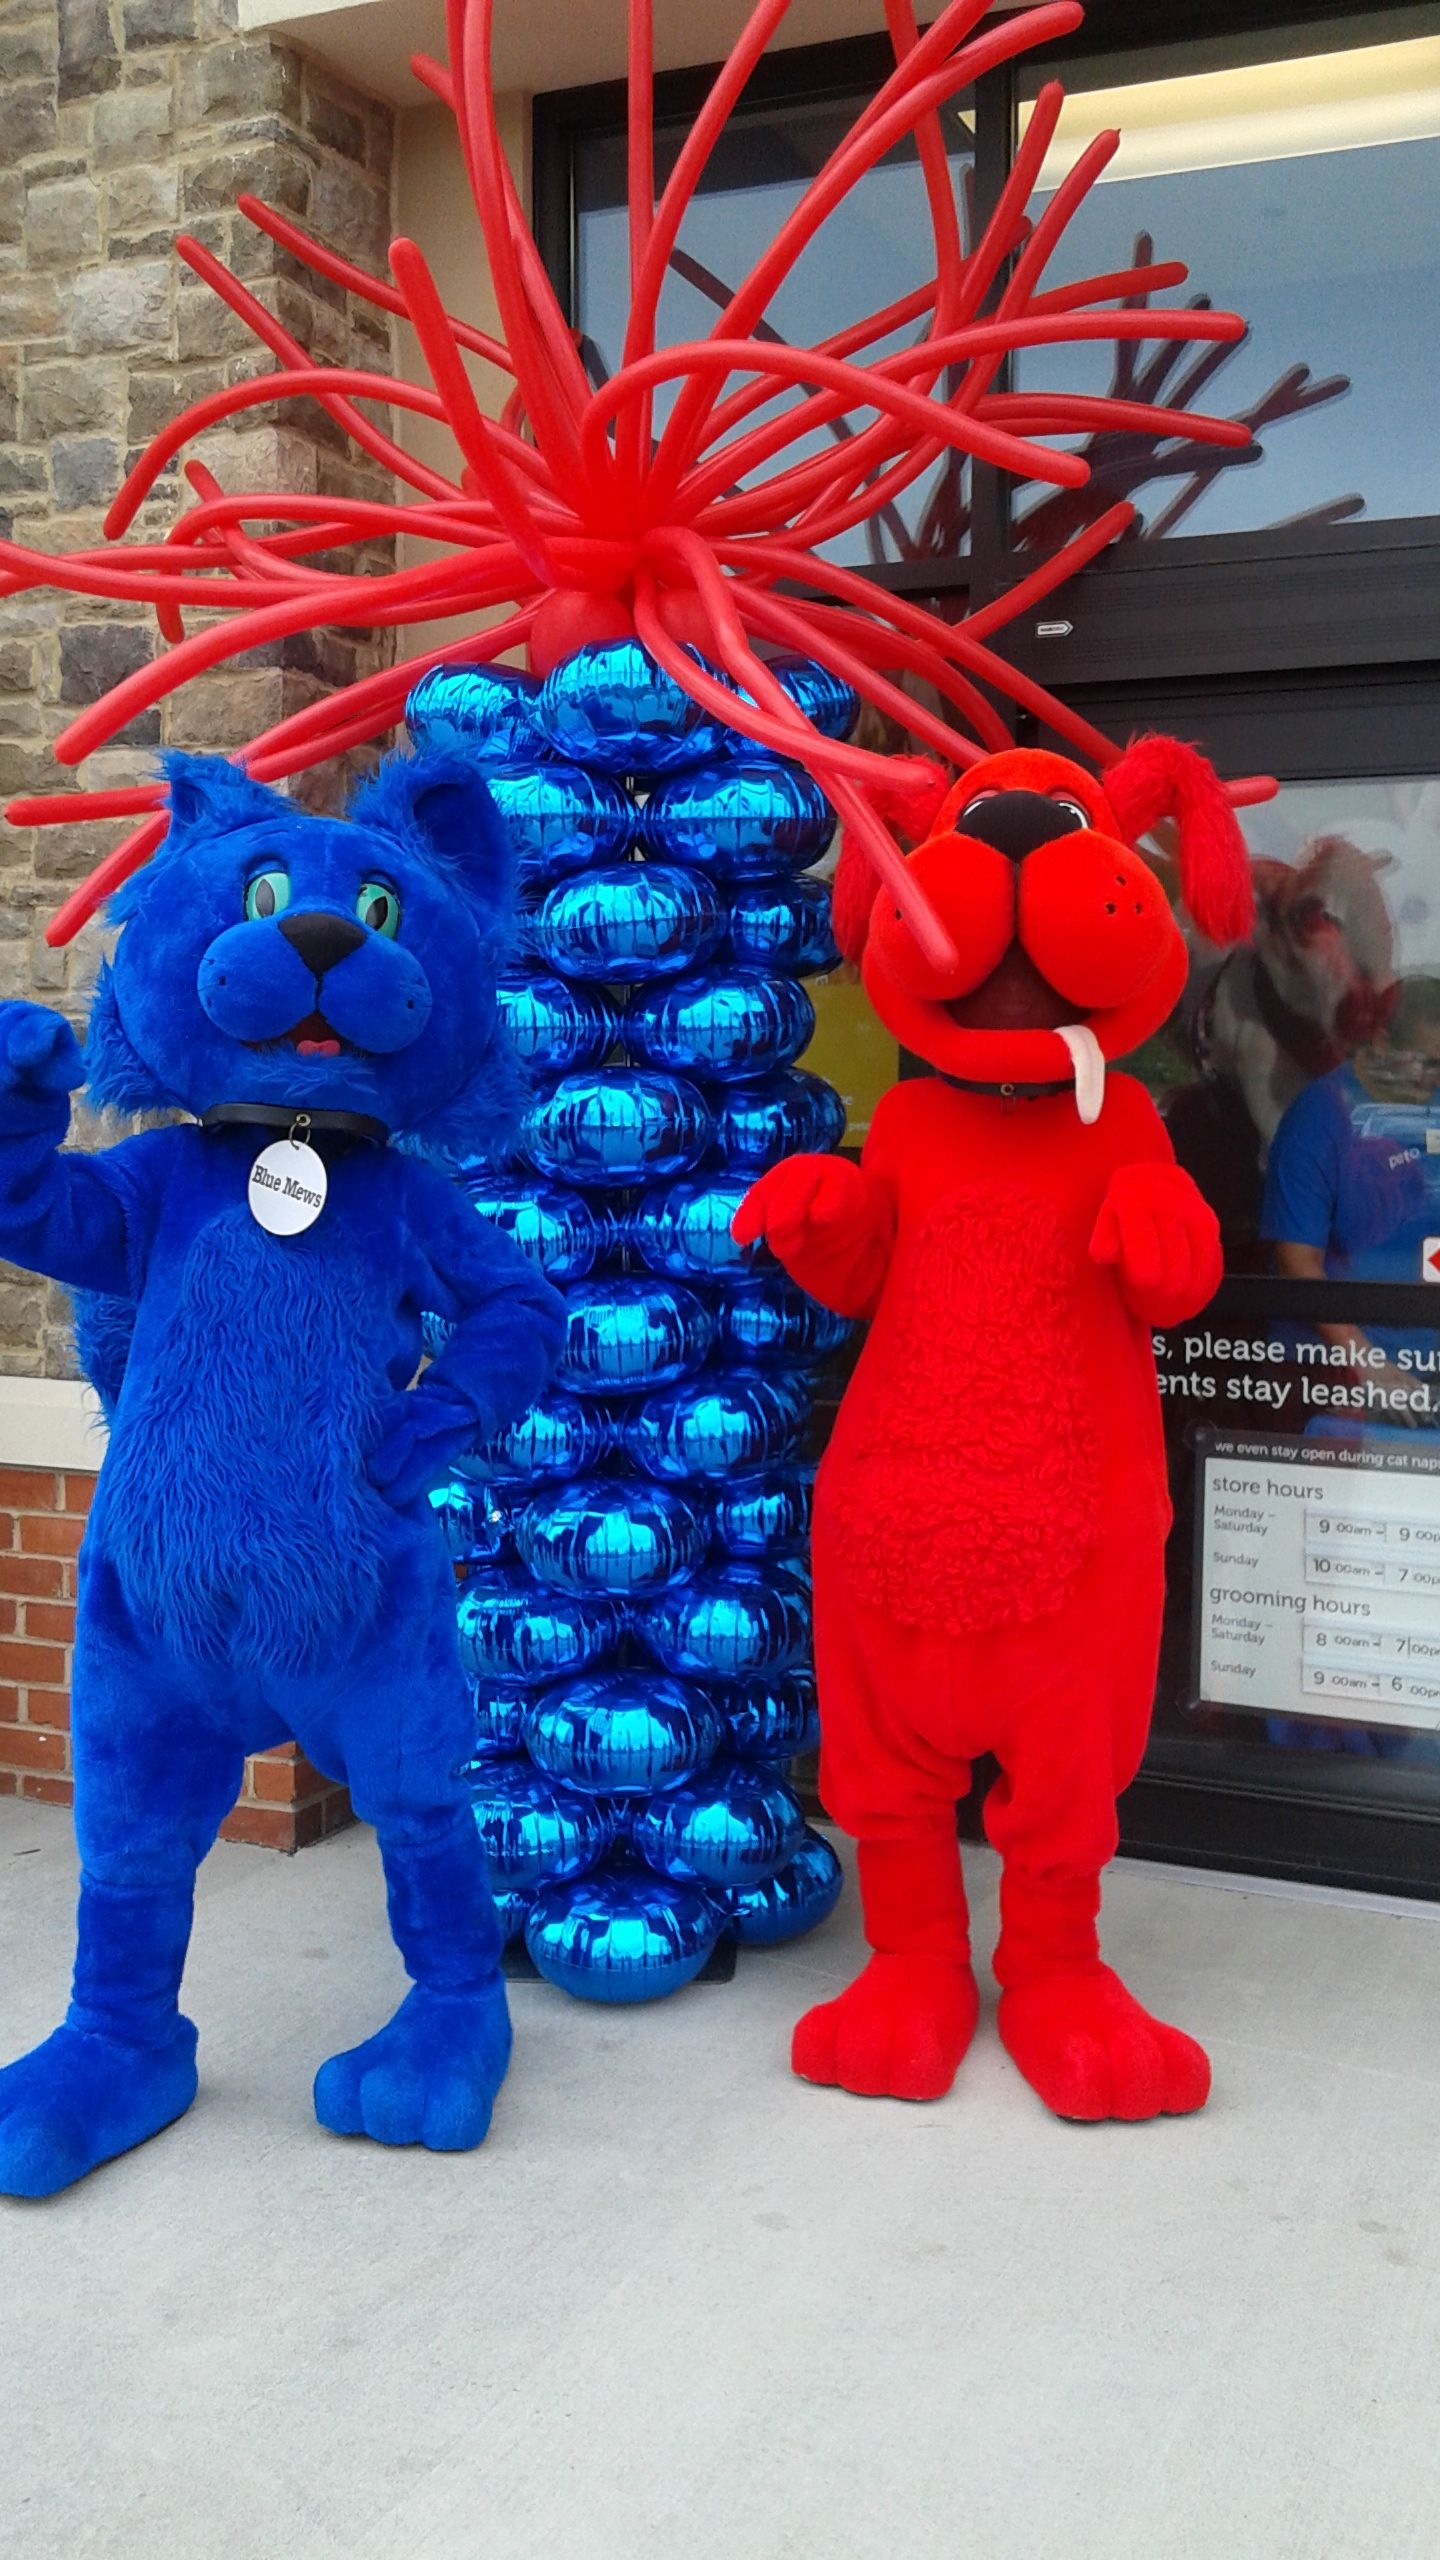 A Wonderful Photo With The Petco Mascots Blue Mew And Red Ruff And